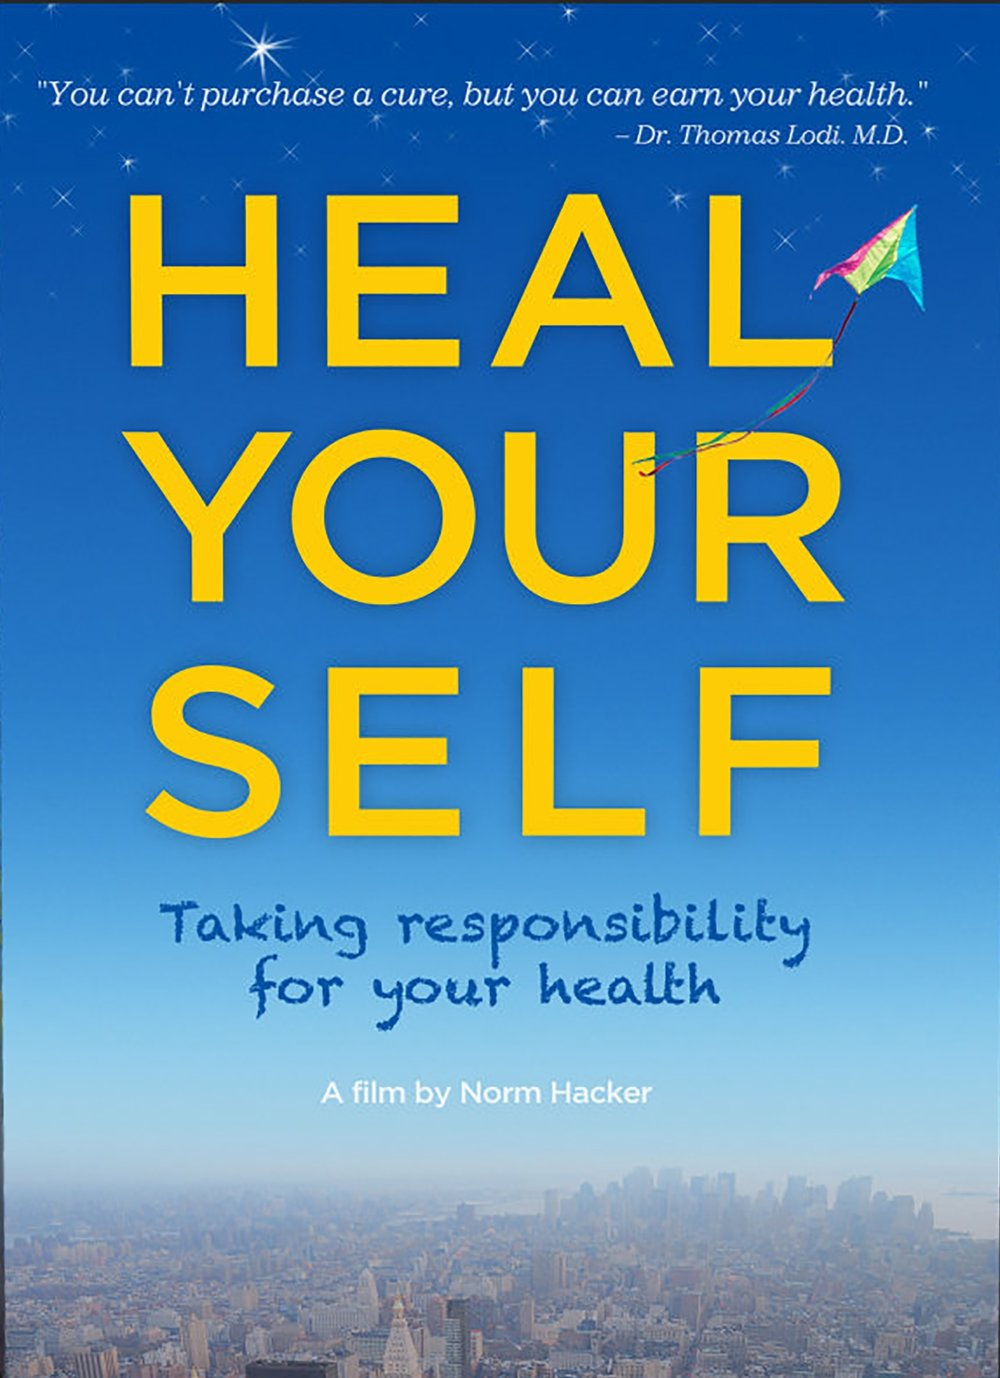 Heal Your Self speaks to some of the greatest authorities on health today who talk about Food and Nutrition, Emotional and Environmental Stress, The Power of the Mind, Self-Education, Meditation, Love, plus practical steps you can take.